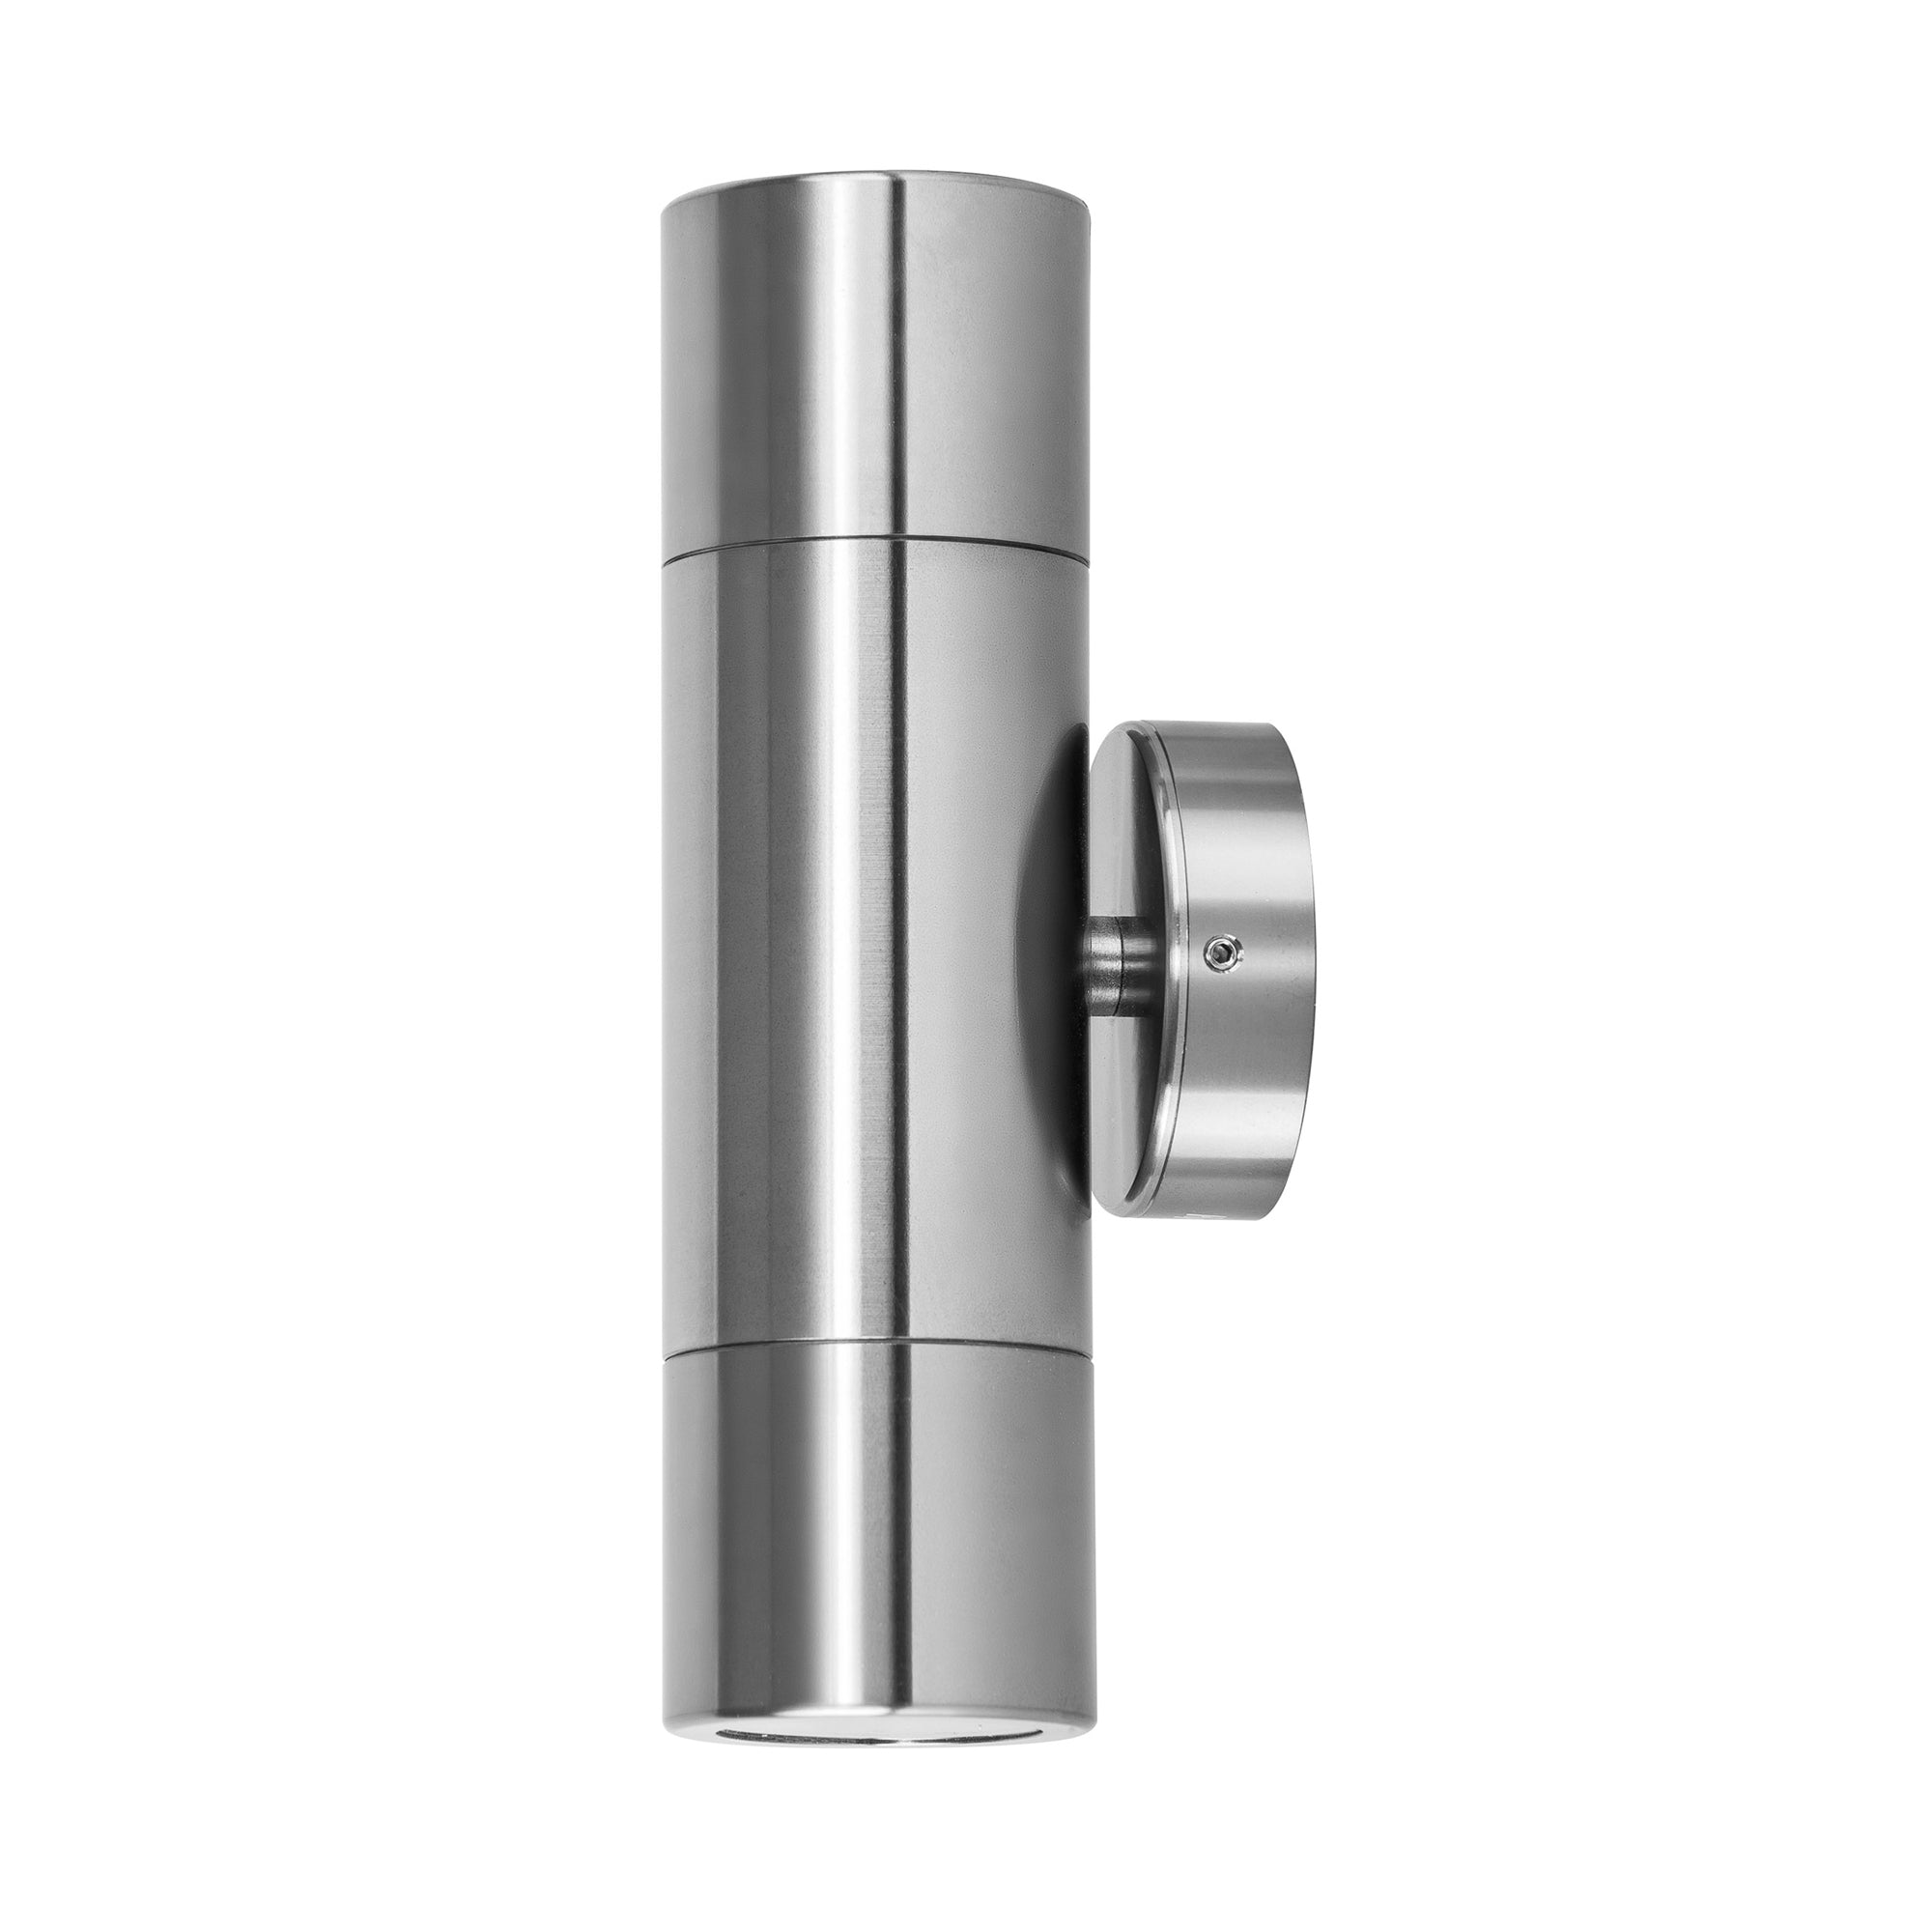 HV1086 - Tivah Titanium Aluminium Up & Down Wall Pillar Lights